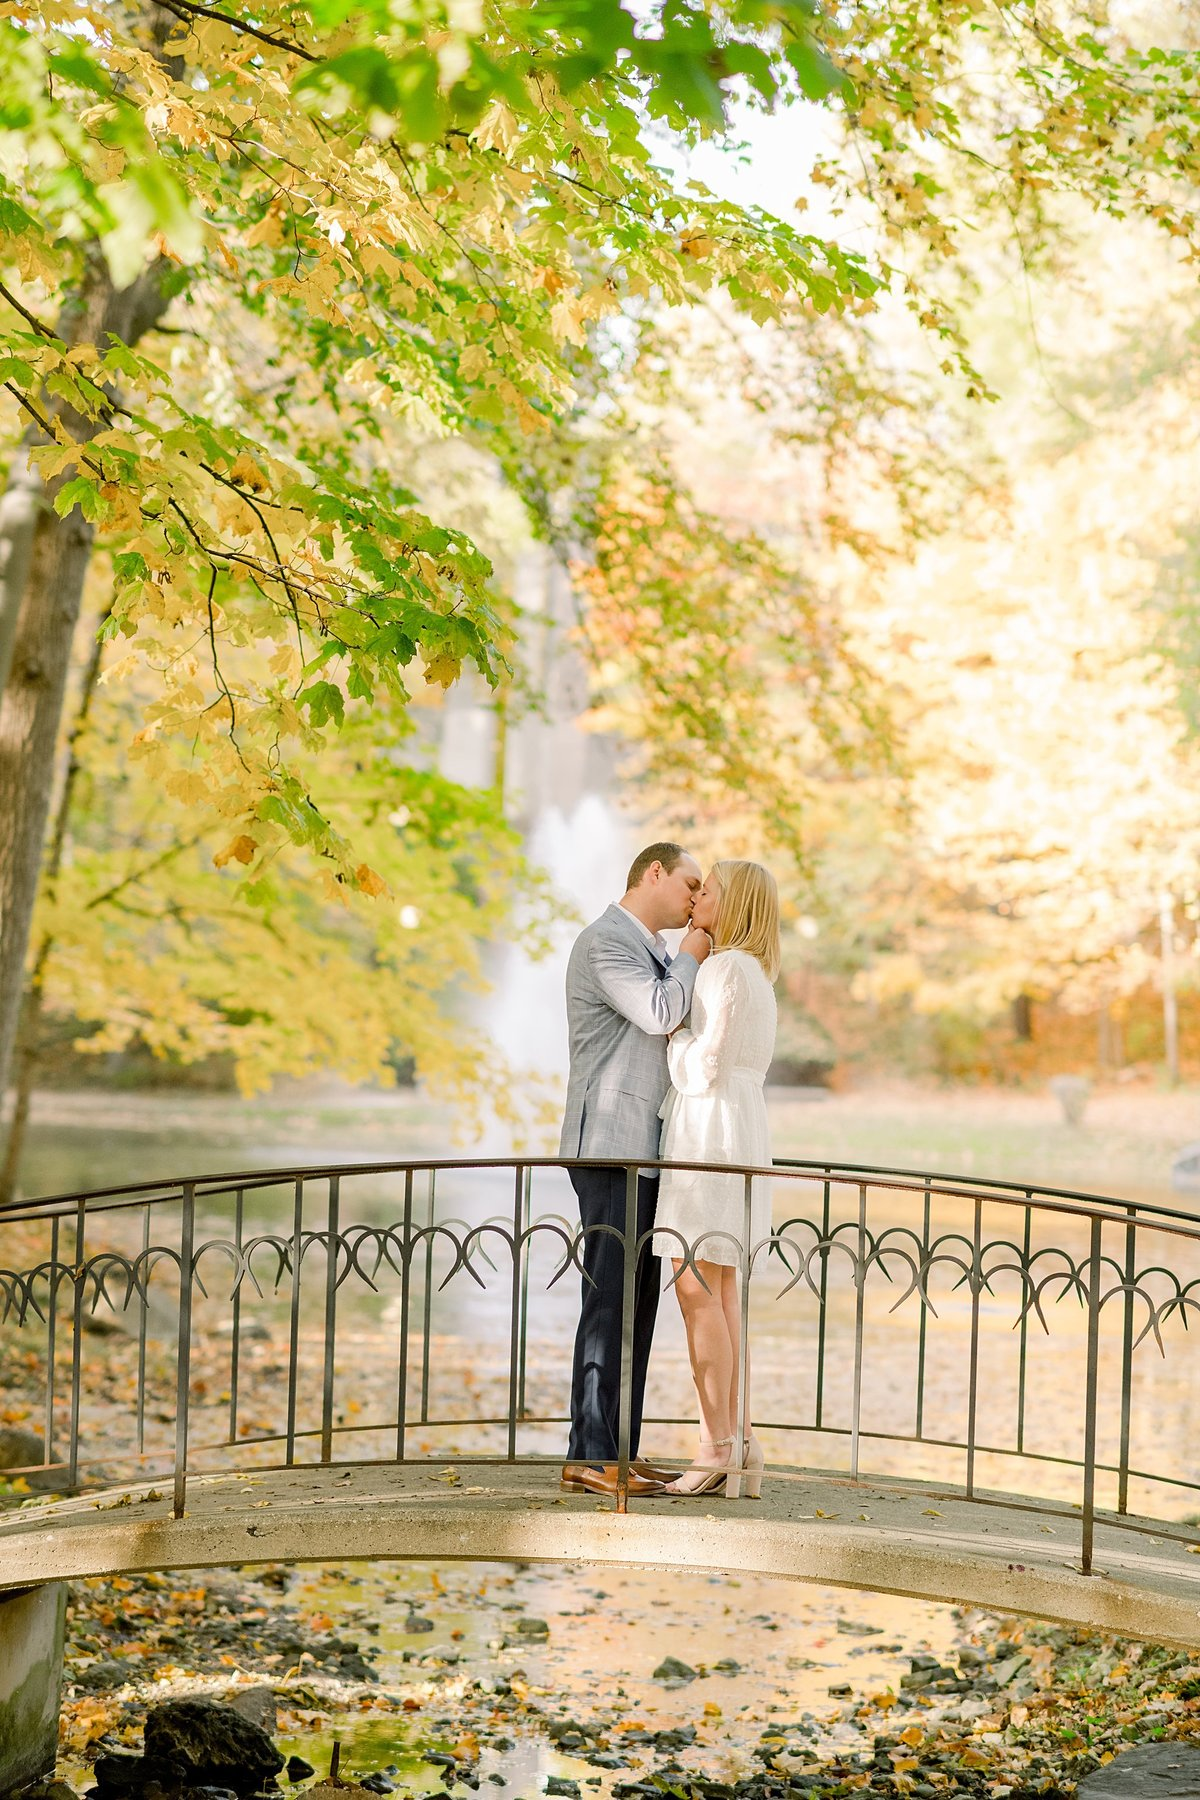 Holcomb Gardens Engagement Session Indianapolis, Indiana Wedding Photographer Alison Mae Photography_3189